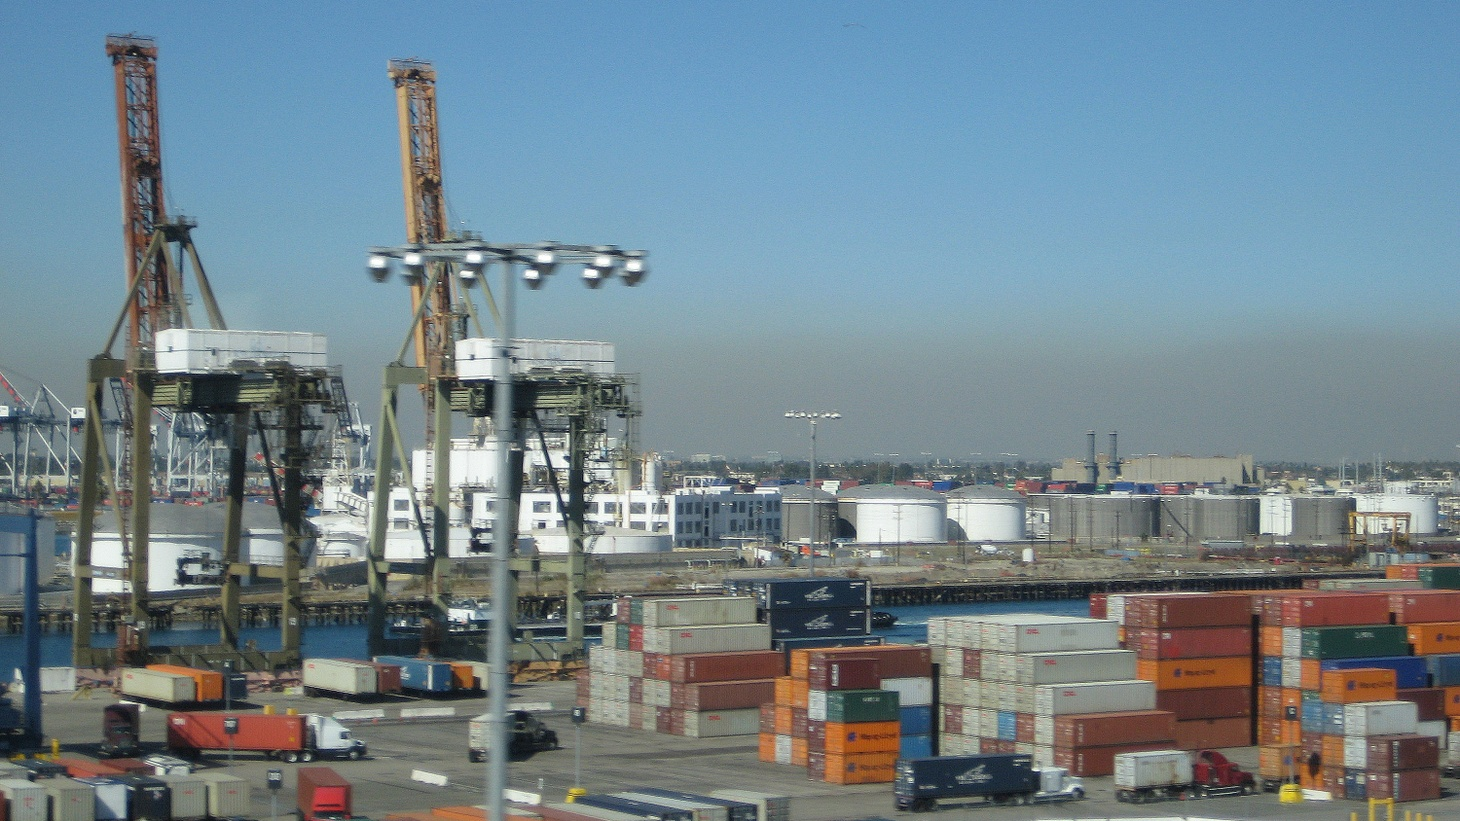 Retailers and agricultural interests are warning about a possible West Coast shipping strike or a lockout that could cost the economy billions. They've asked the President to step in. We hear from dockworkers and shippers about a slowdown that's already under way.